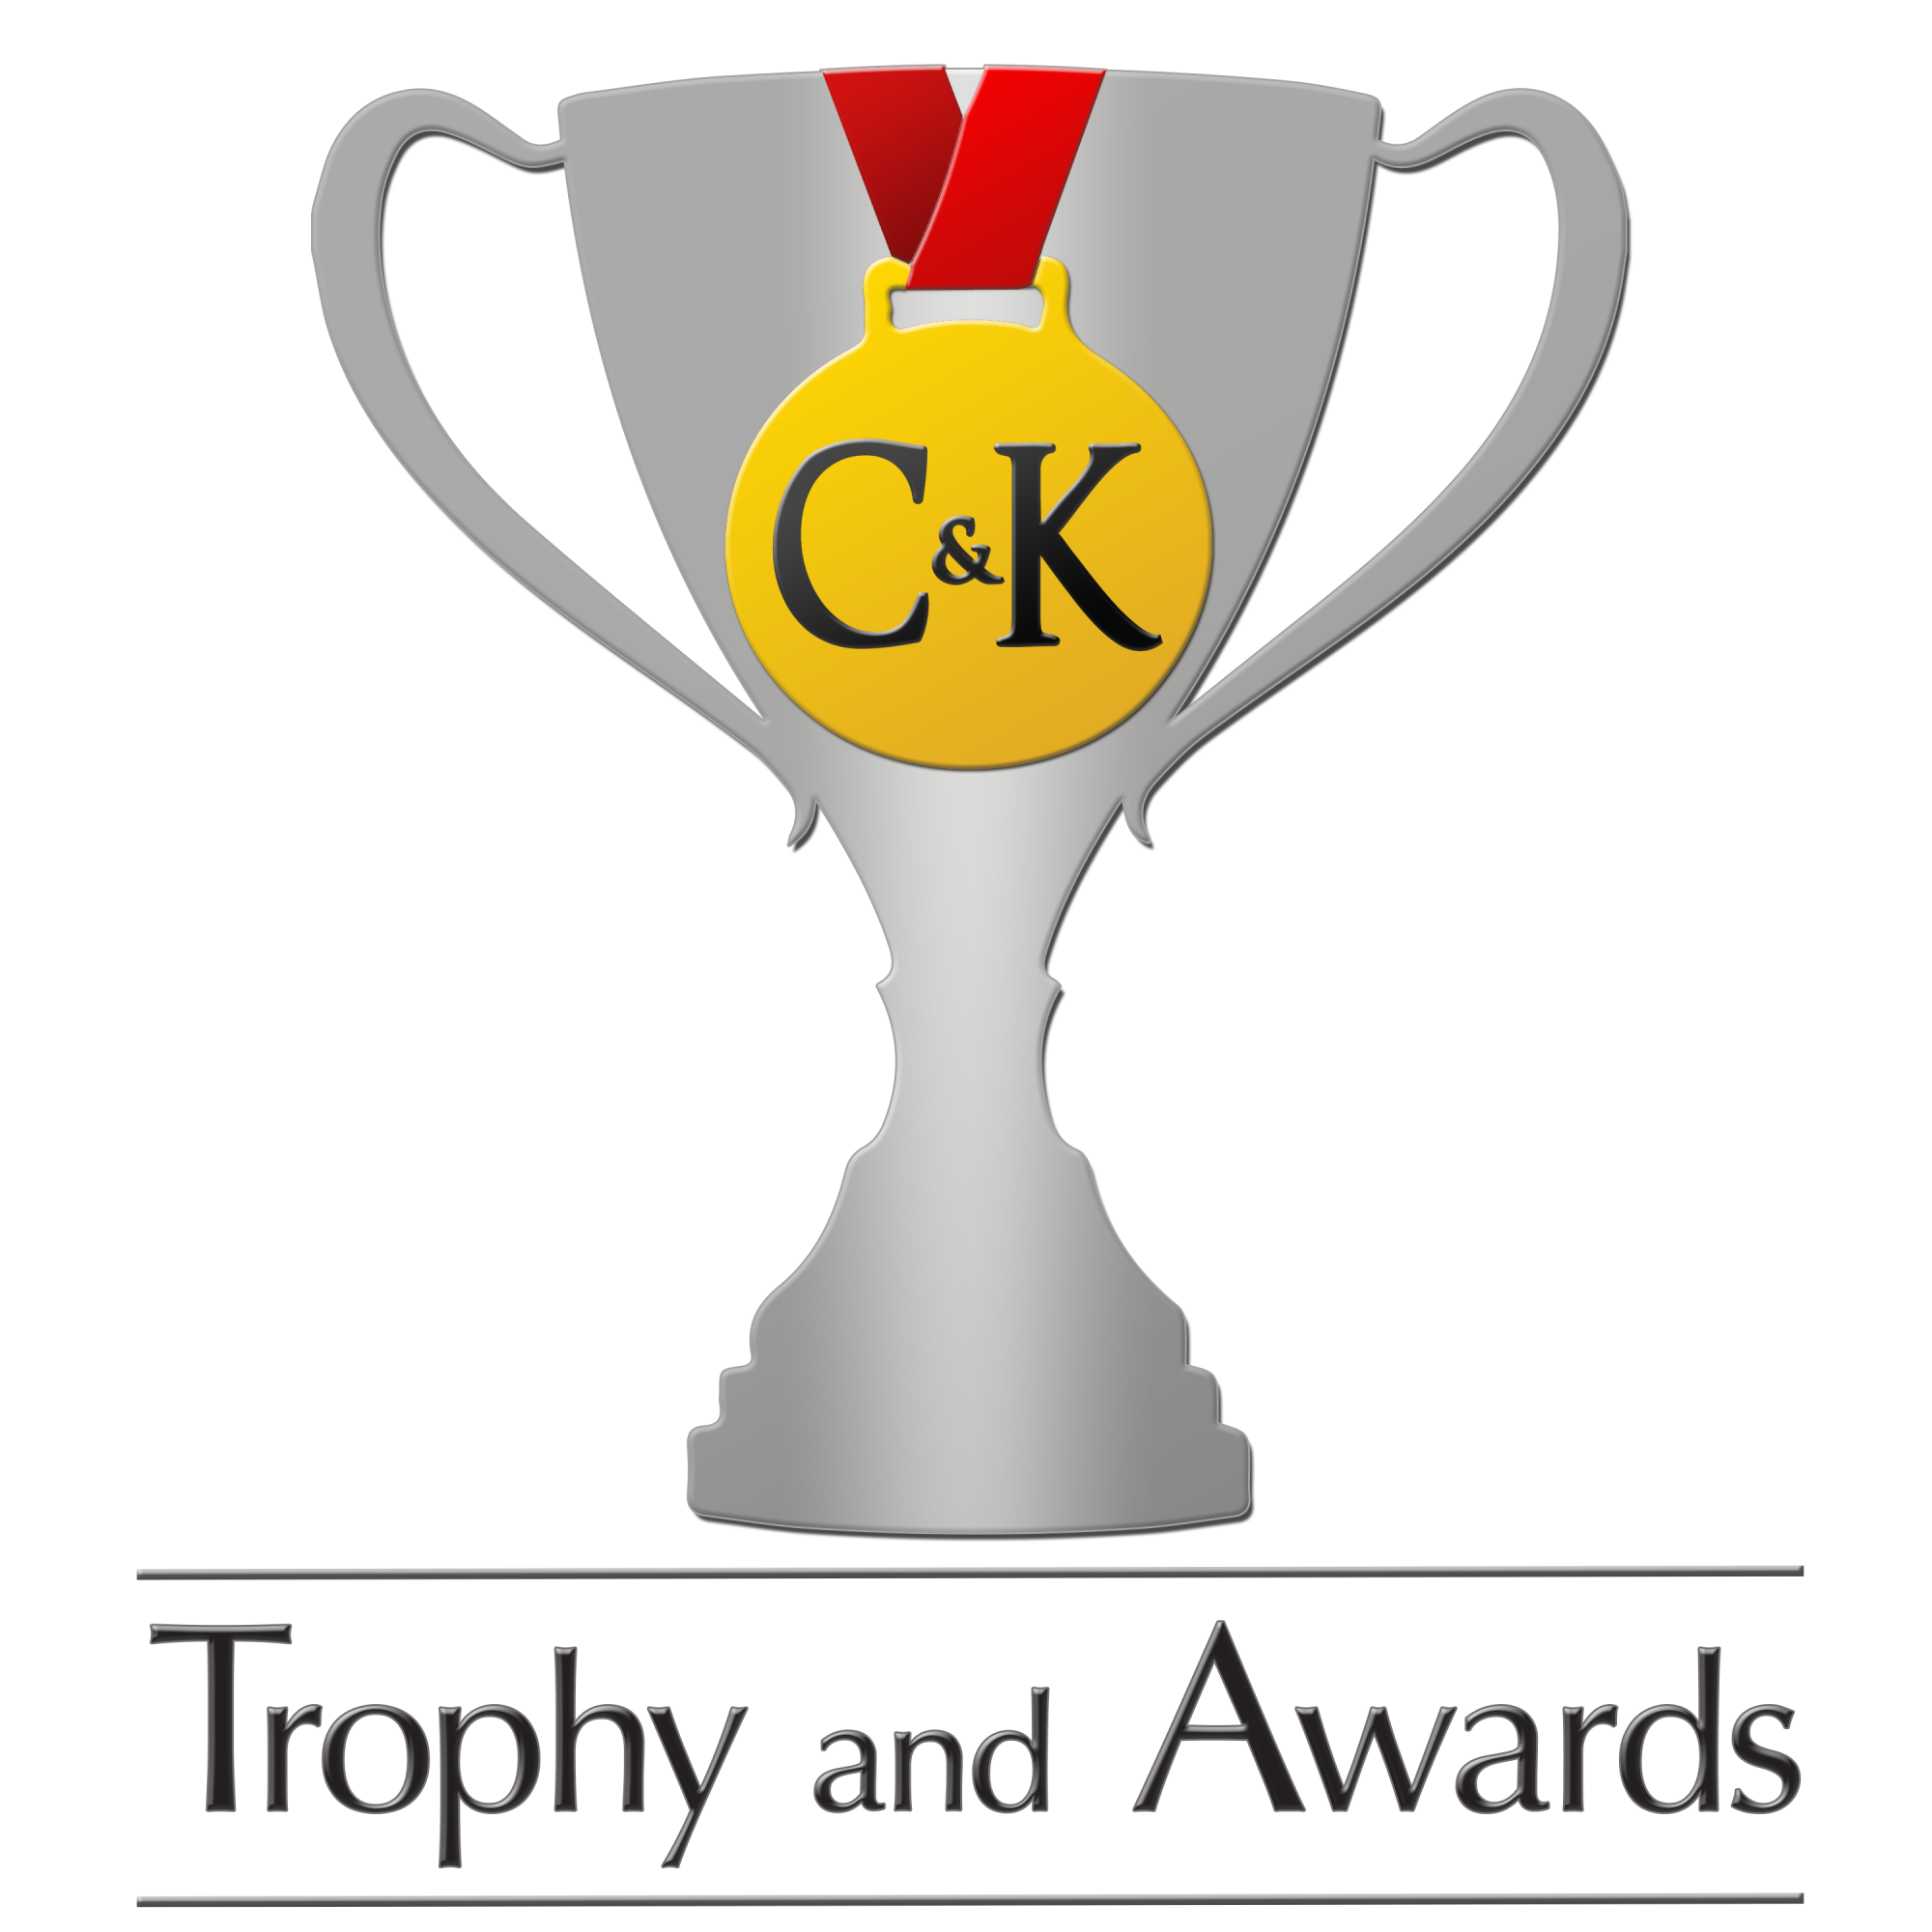 C & K Trophy and Awards